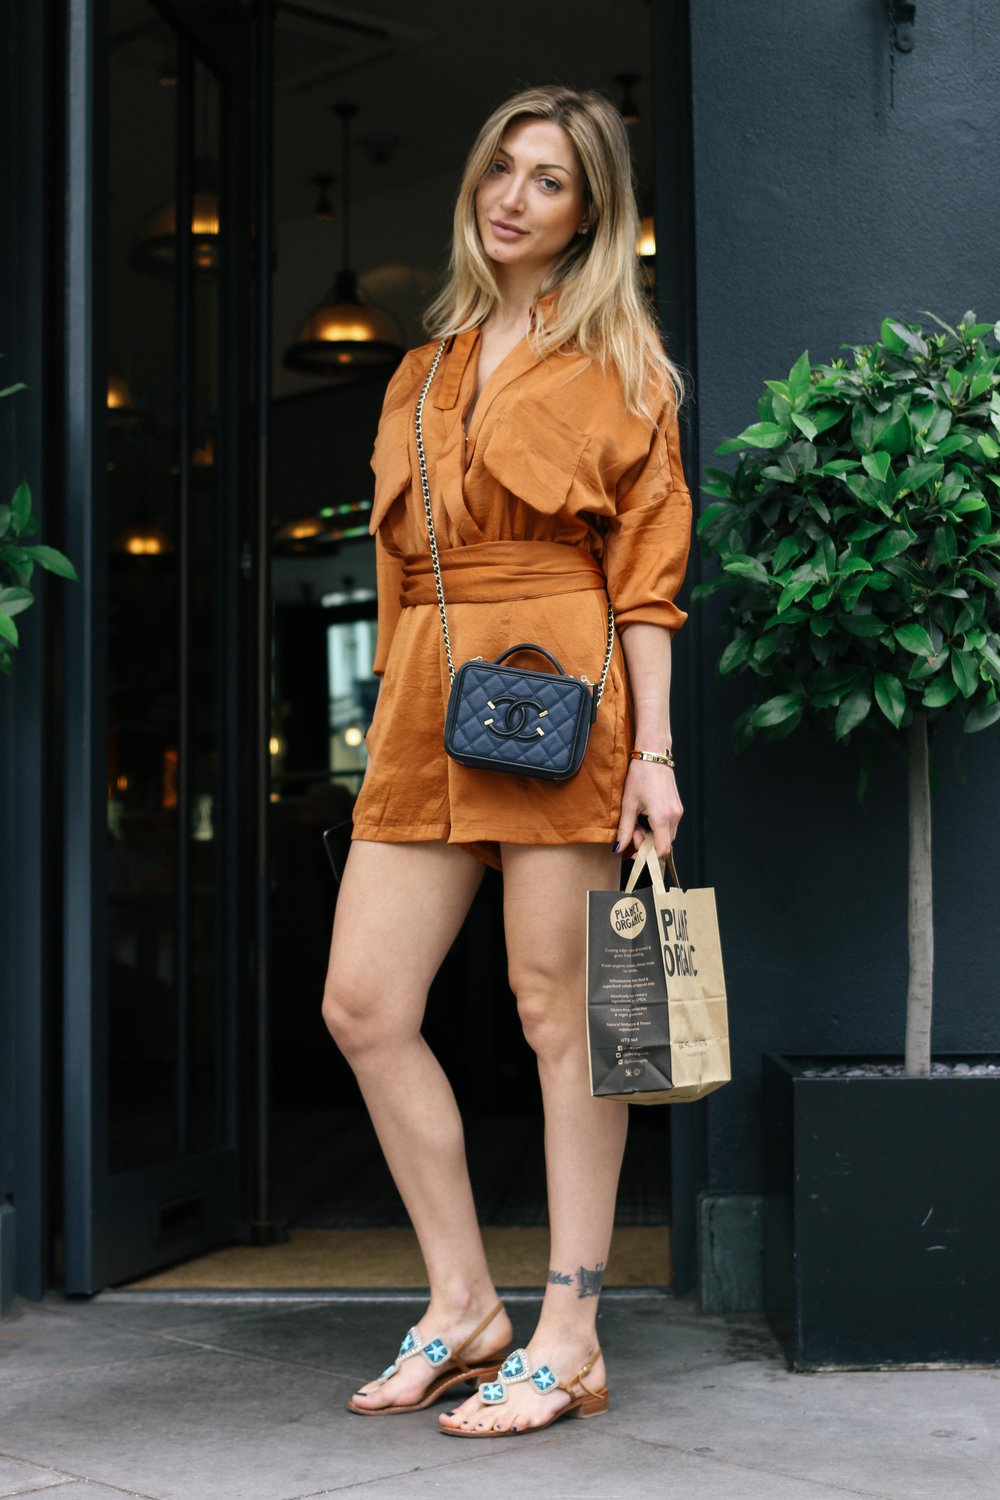 Street fashion stories_Imaginealady_jumpsuit